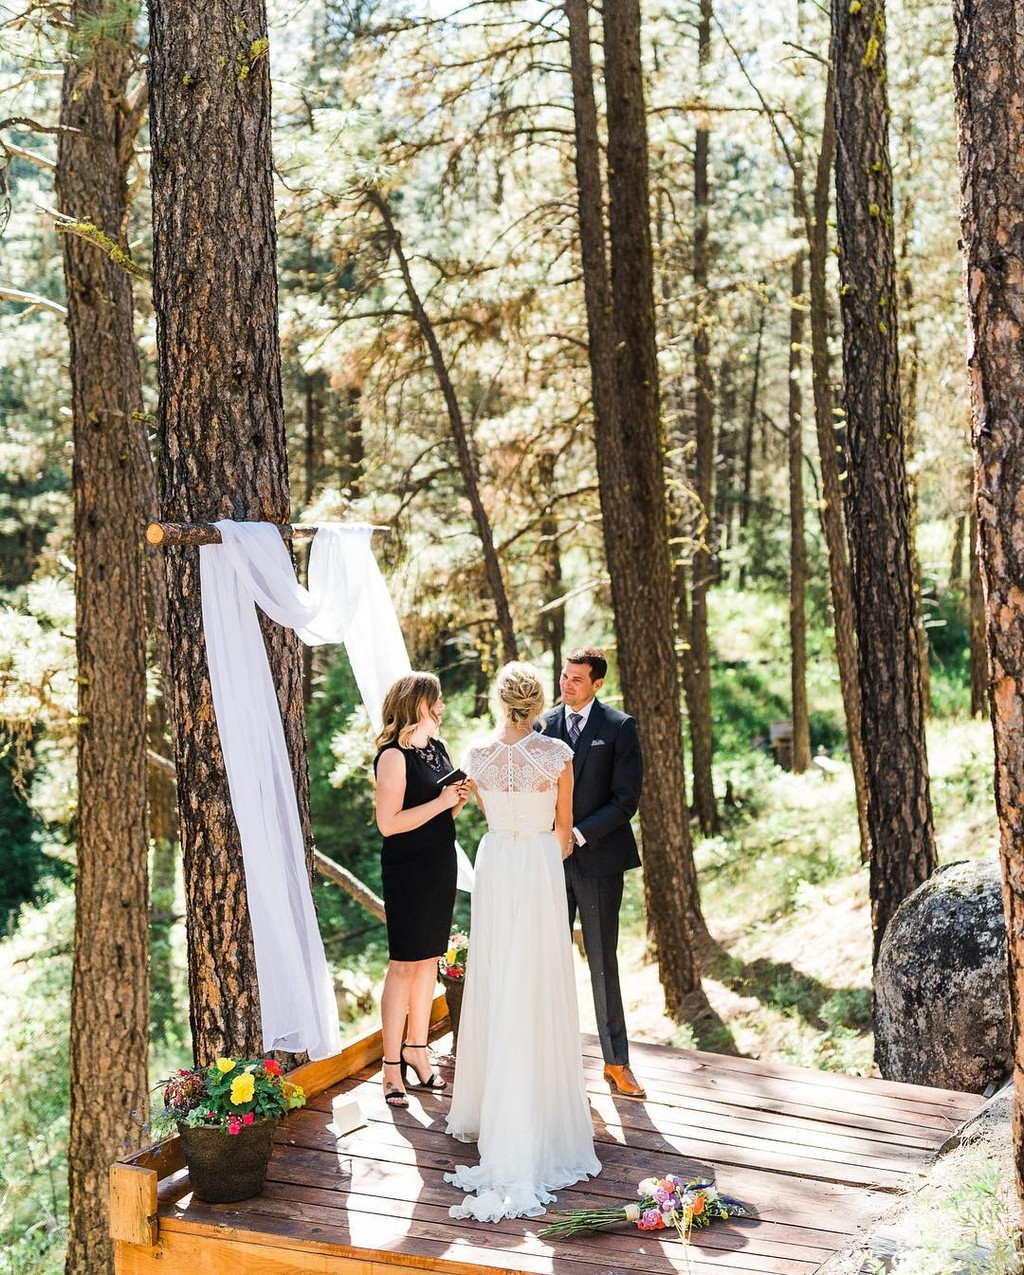 Getting married in the mountains!